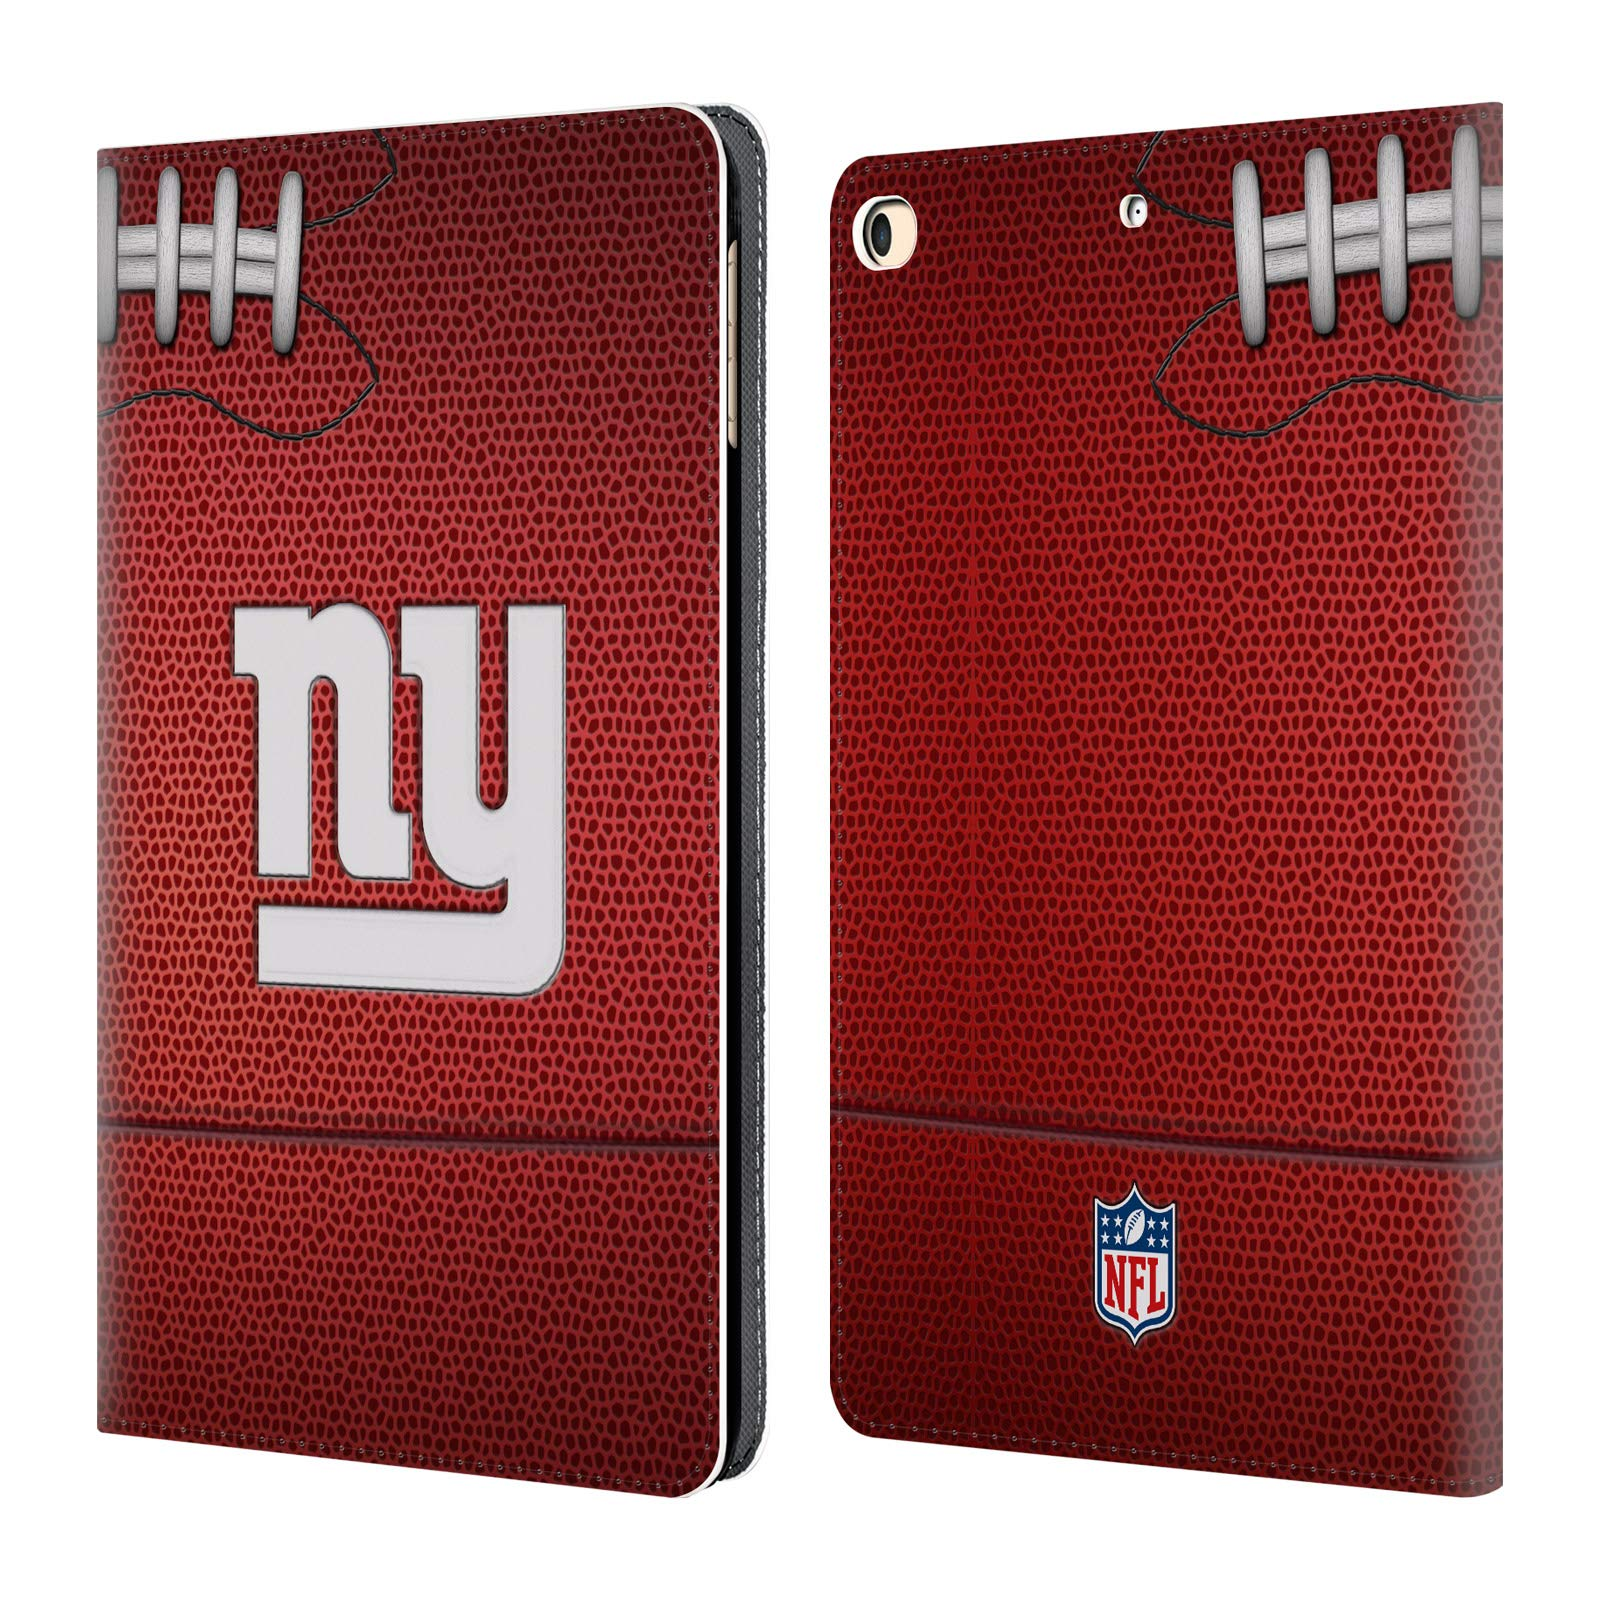 Official NFL Football 2018/19 New York Giants Leather Book Wallet Case Cover for iPad 9.7 2017 / iPad 9.7 2018